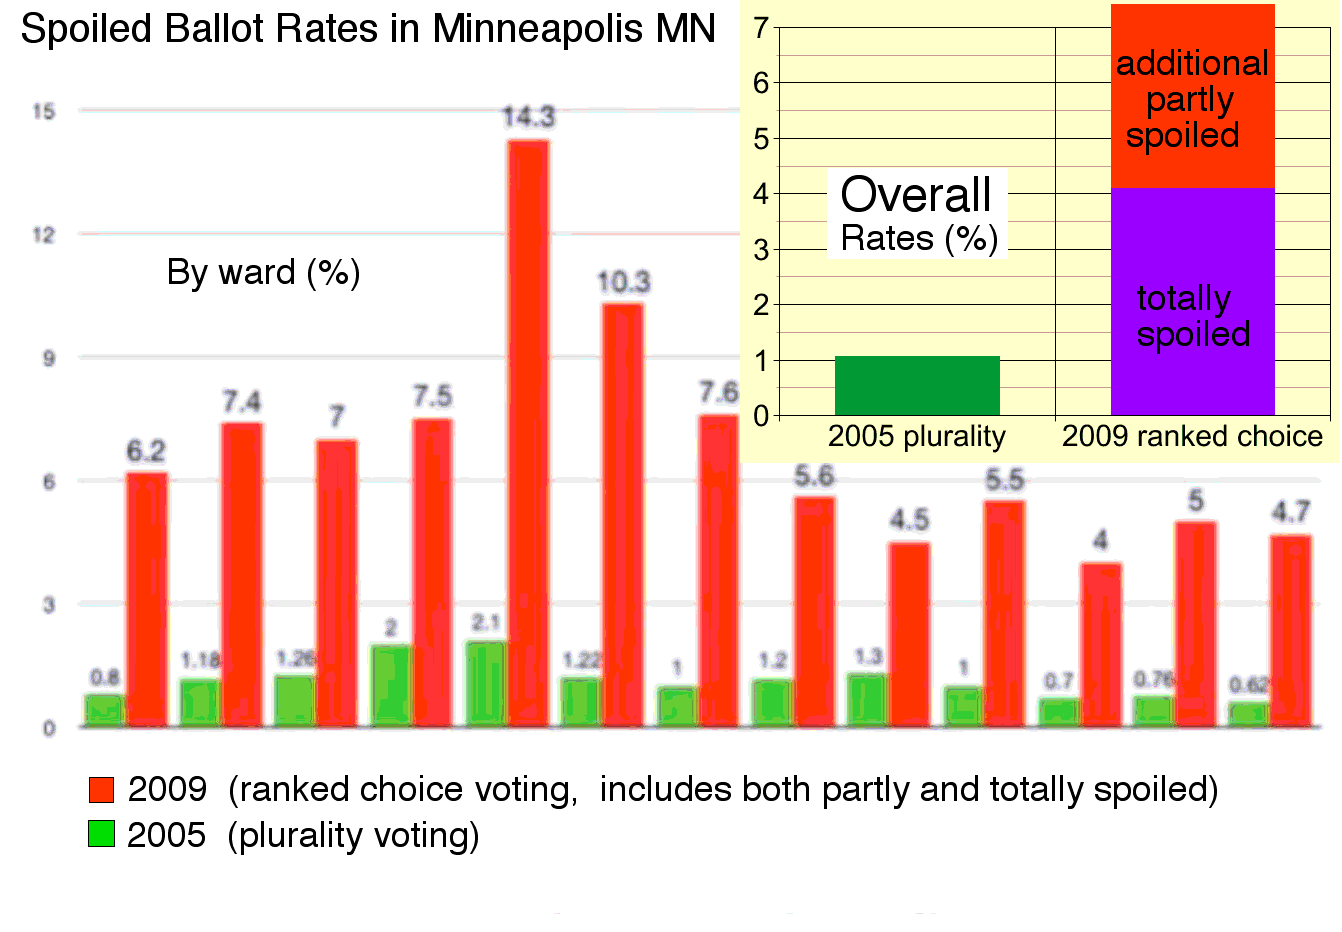 Minneapolis spoilage rate data